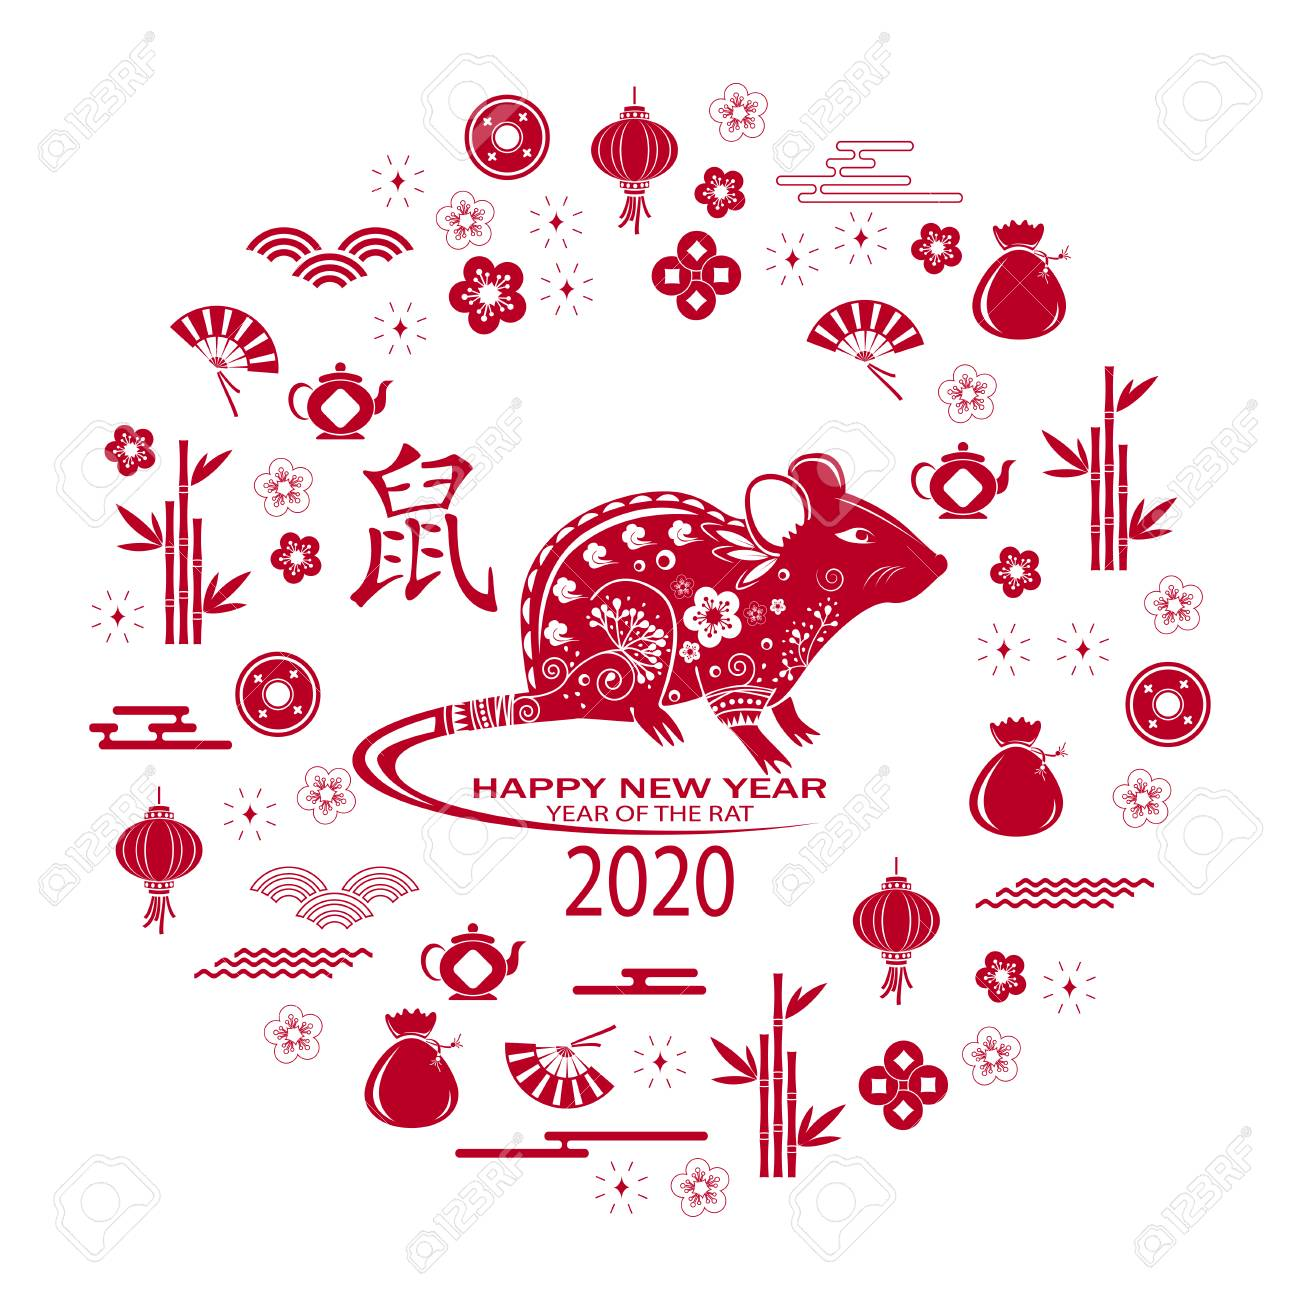 Chinese New Year 2020.Happy Chinese New Year 2020 Card With Rat Chinese Translation